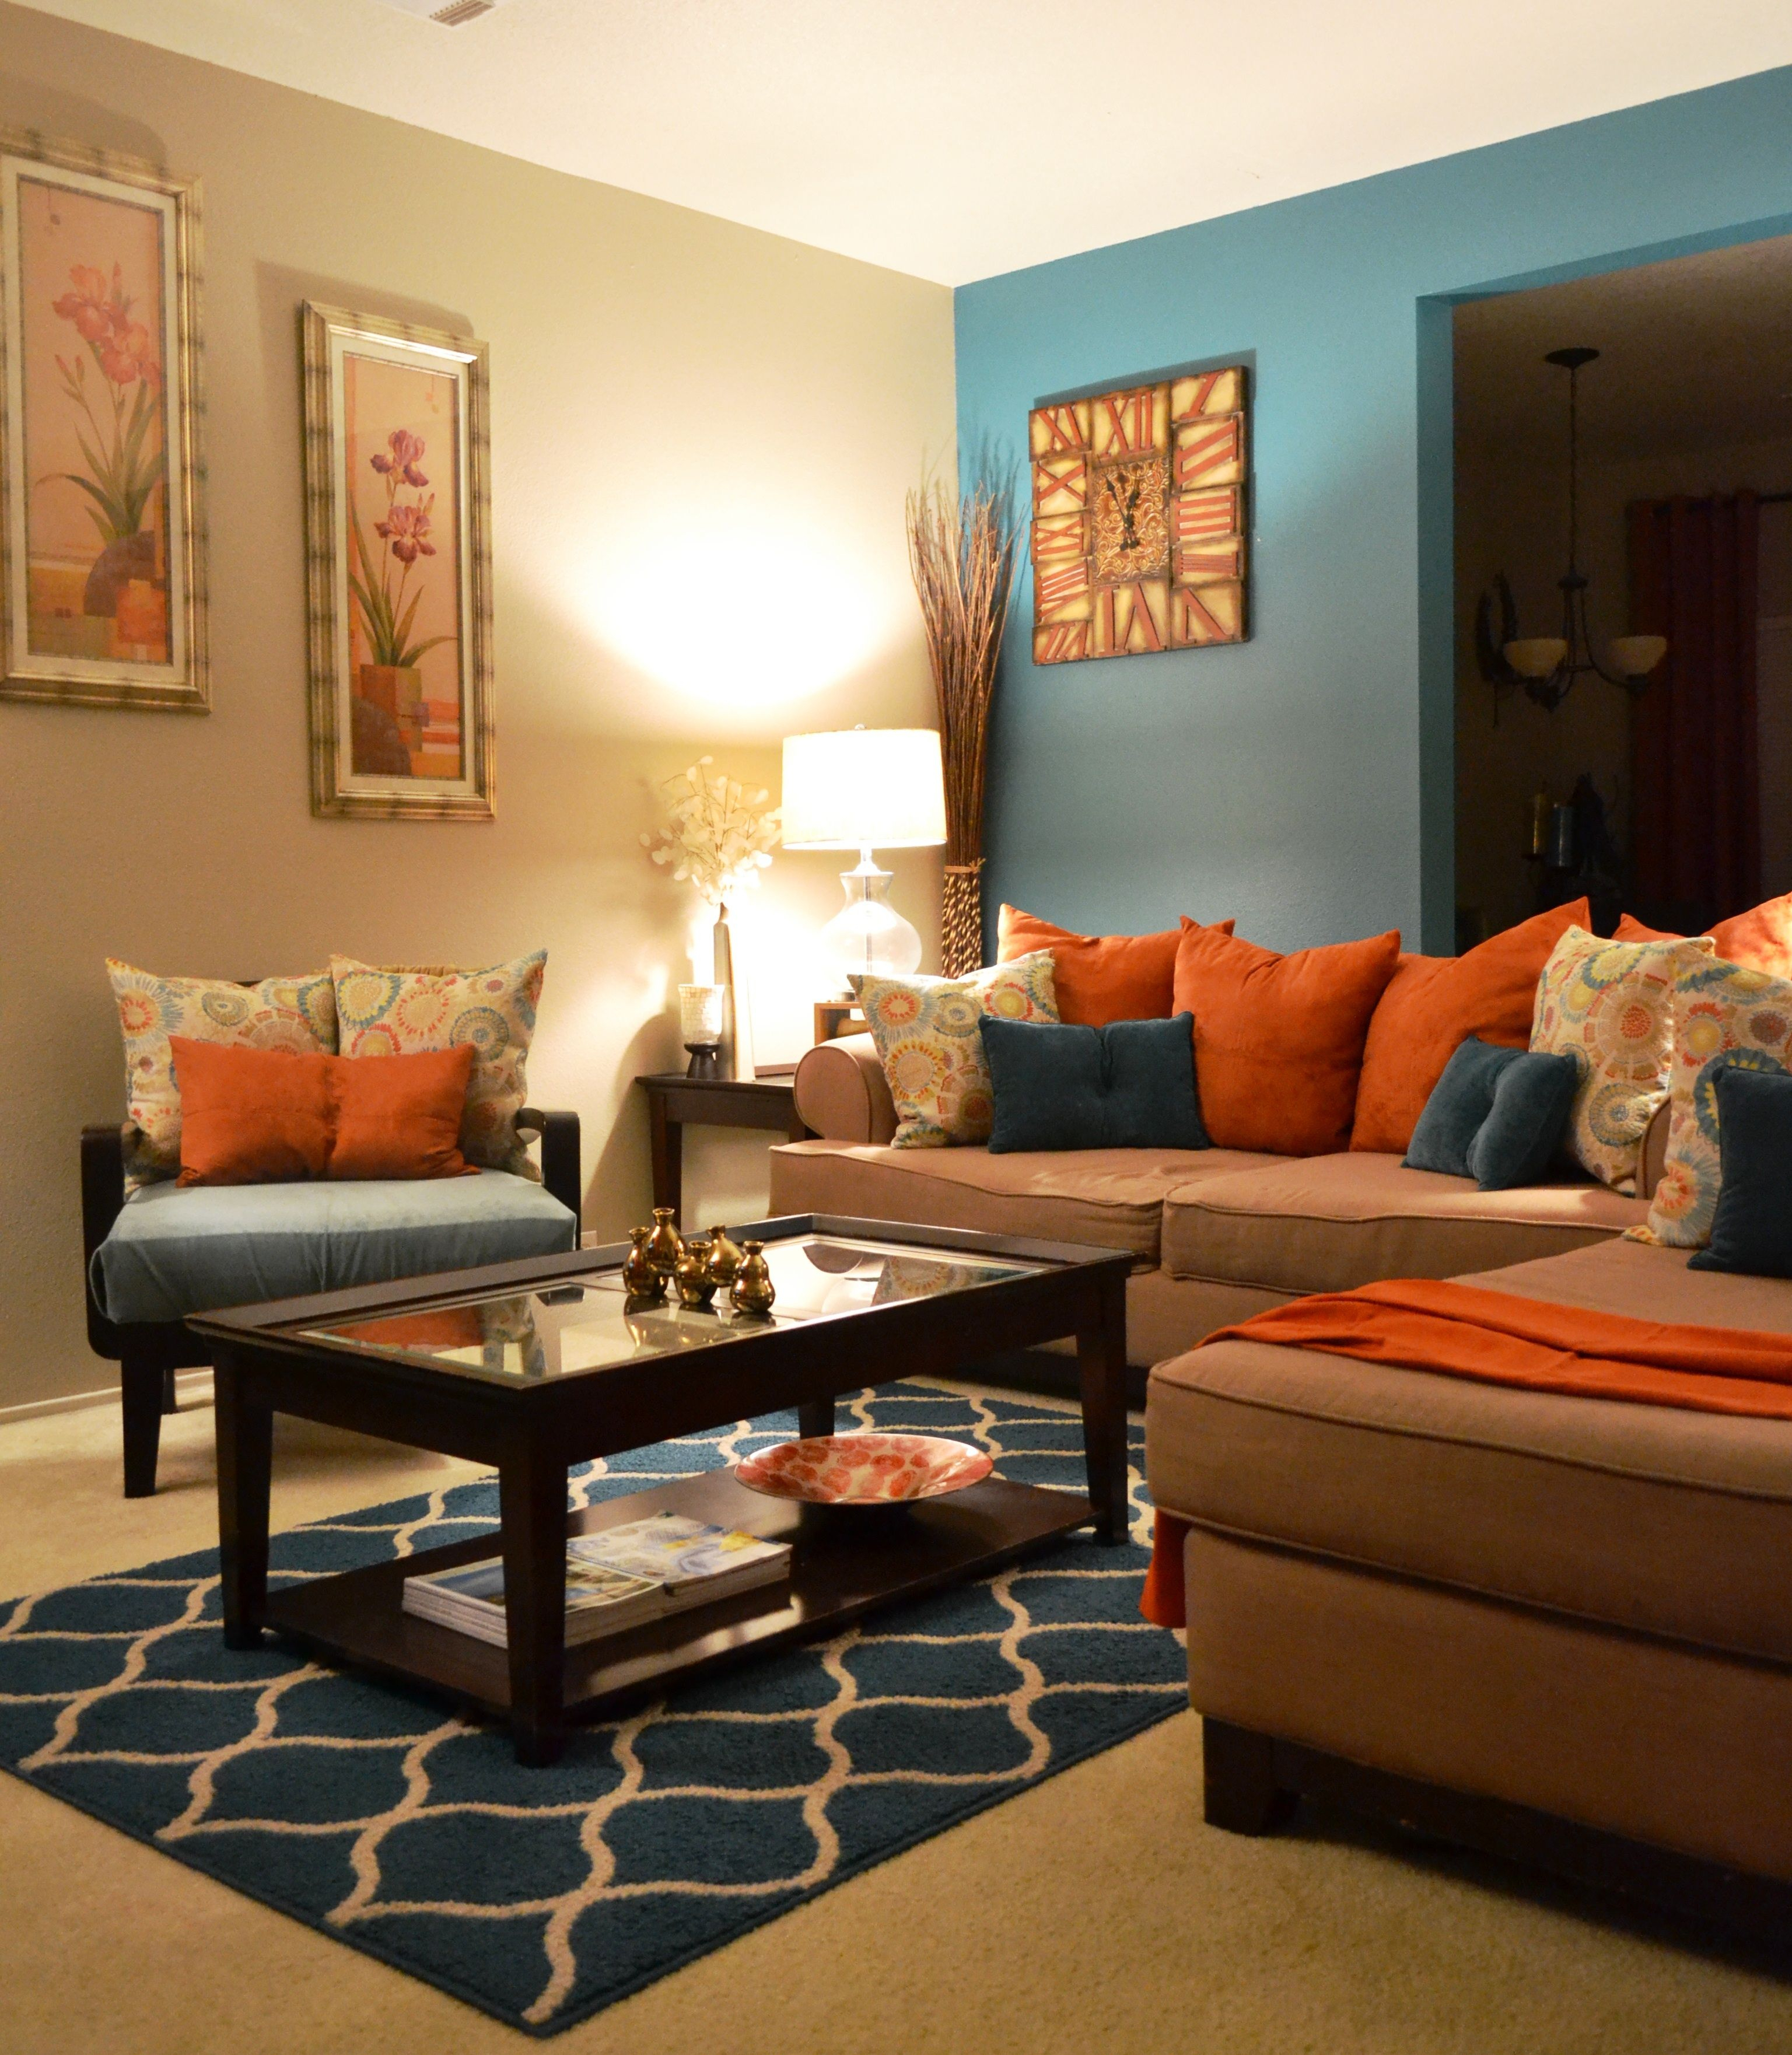 Rugs Coffee Table Pillows Teal Orange Living Room Behr Paint throughout Orange Living Room Set